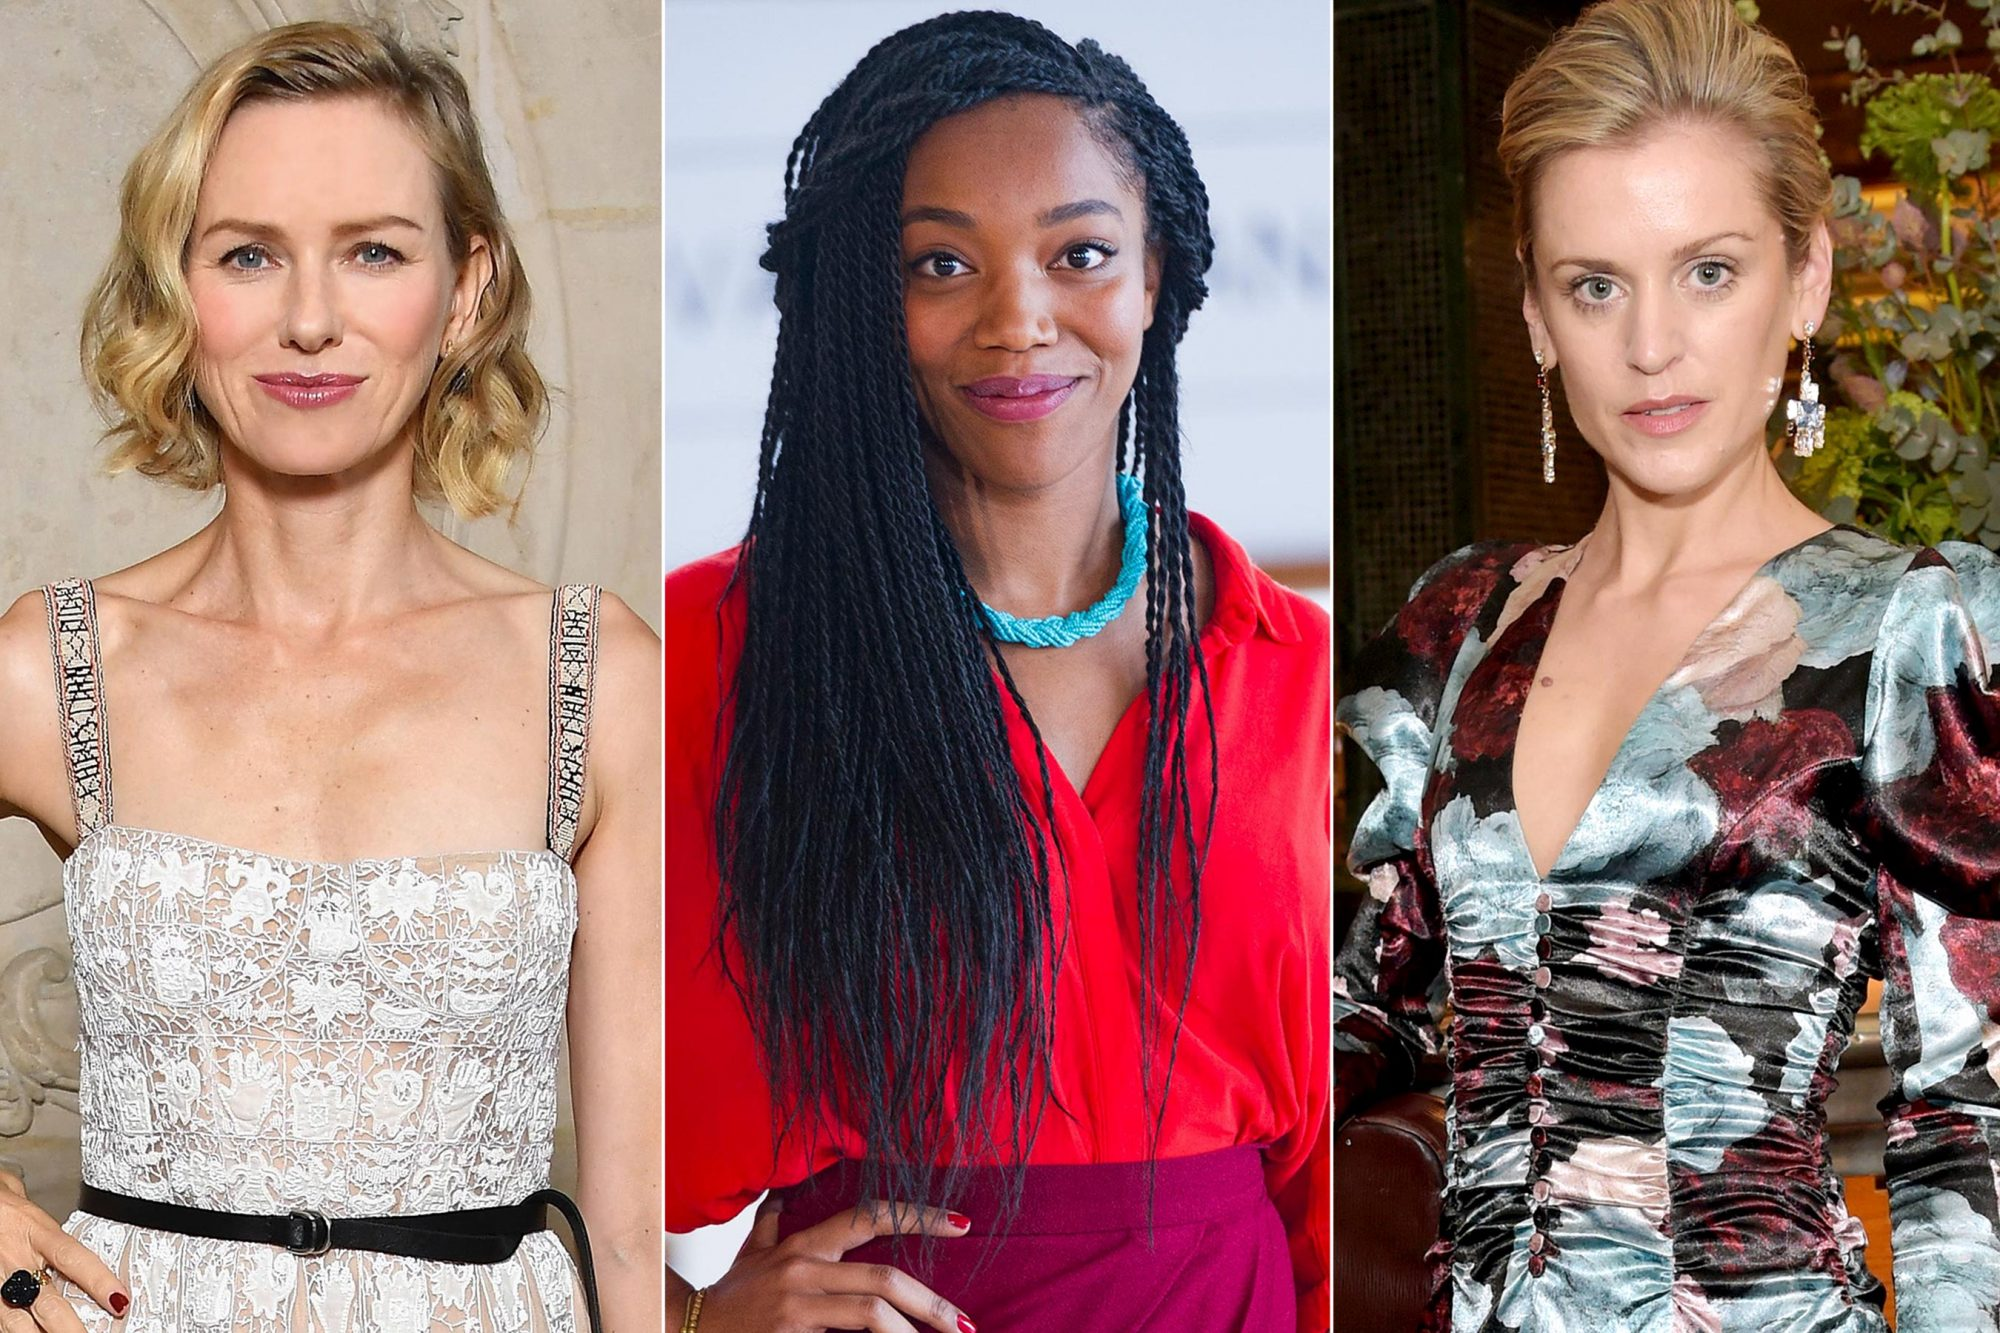 Naomi Watts, Naomi Ackie, Denise Gough